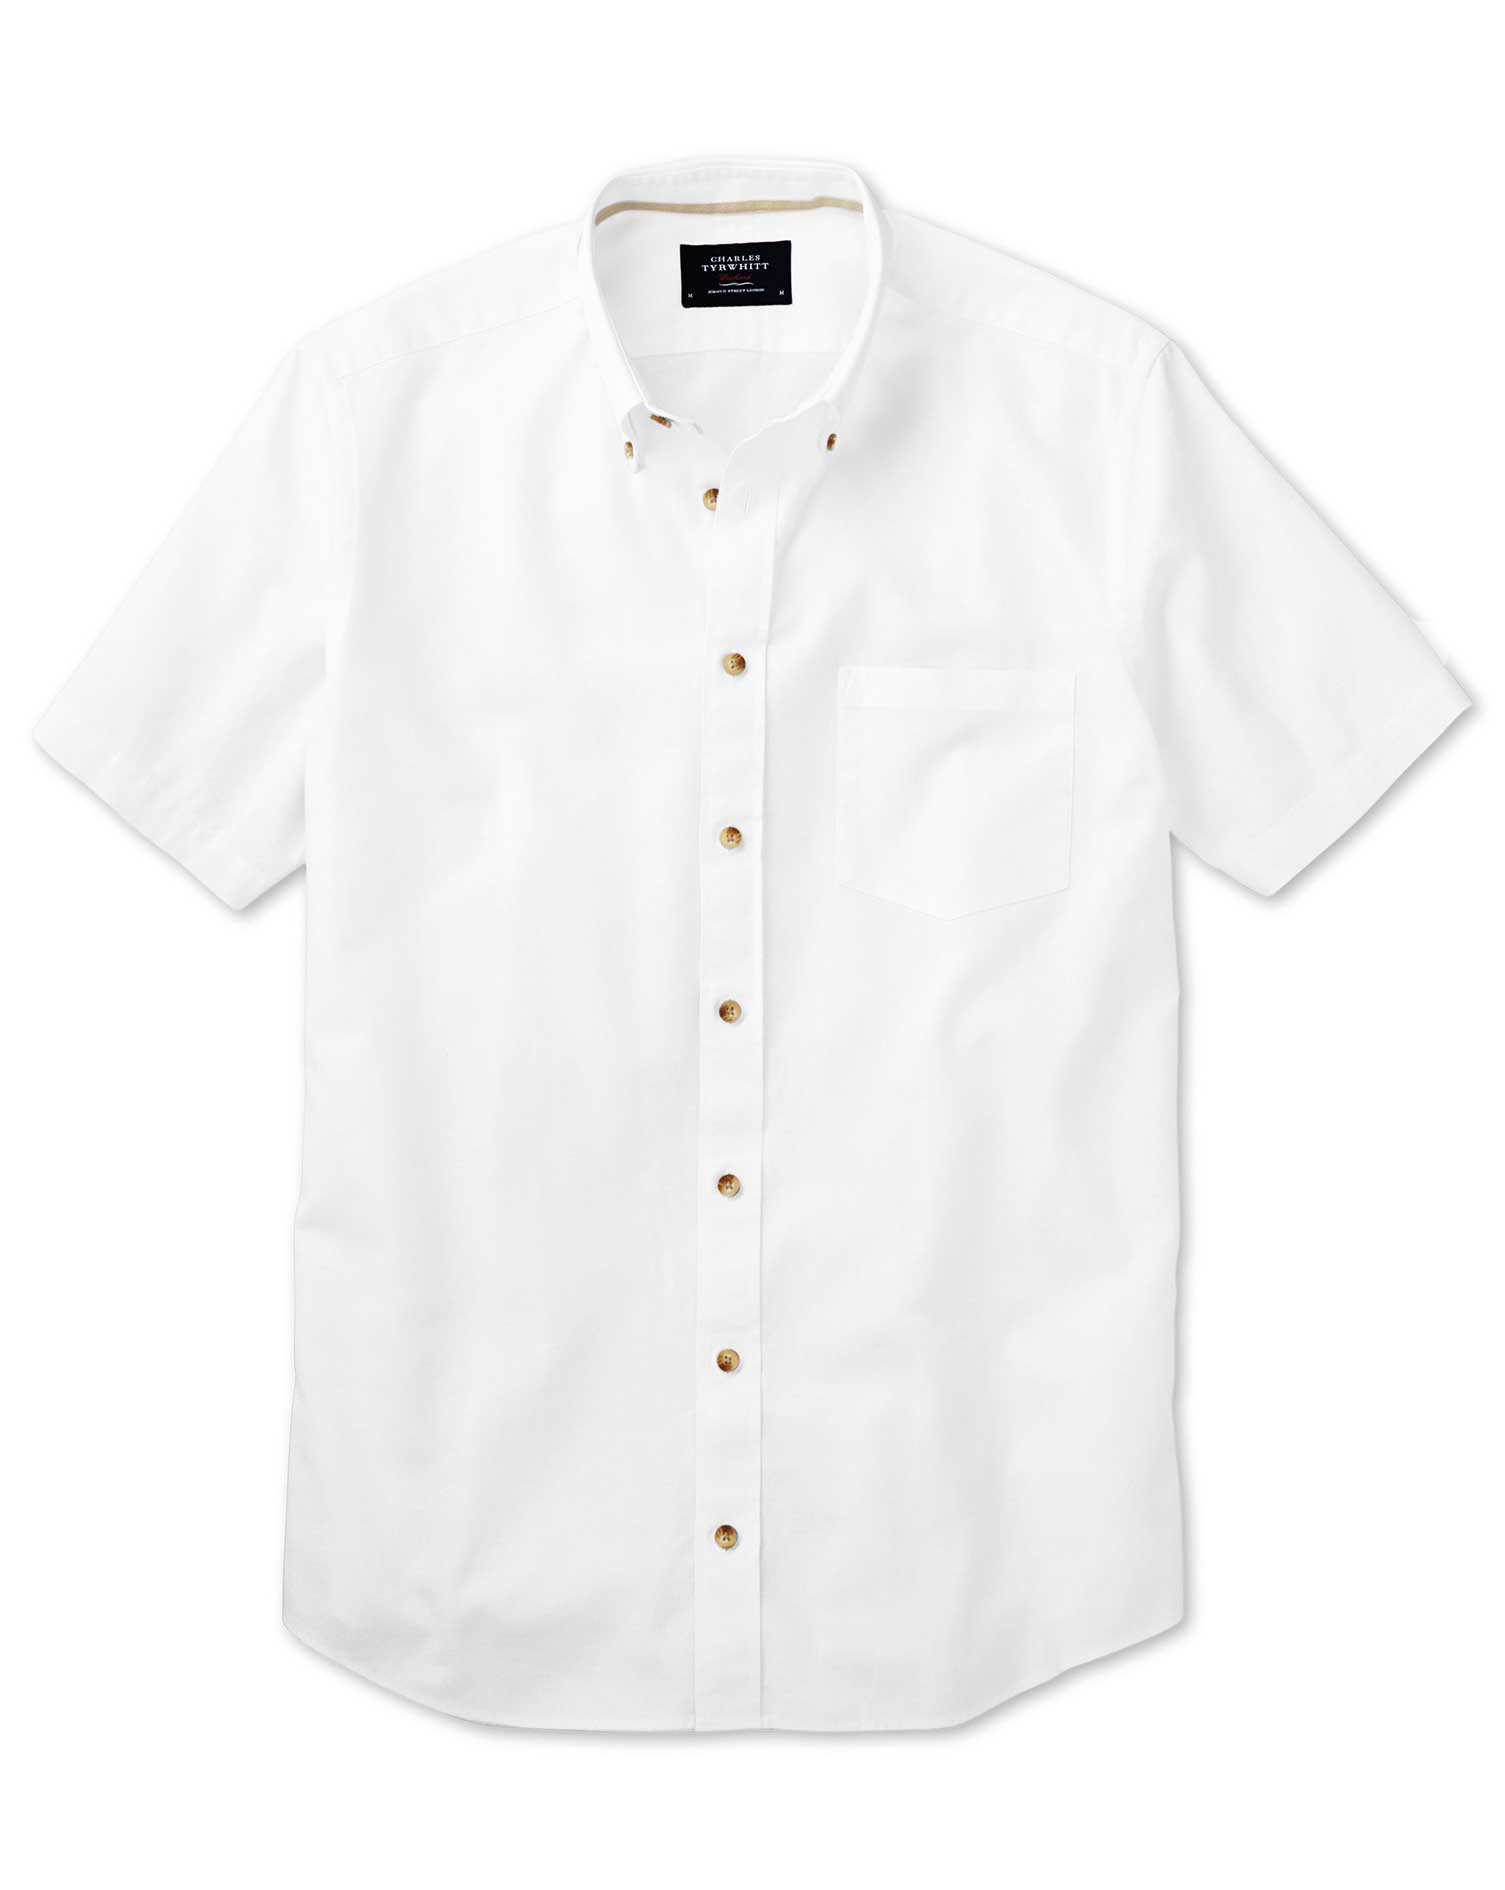 Classic Fit Short Sleeve White Shirt Single Cuff Size Small by Charles Tyrwhitt